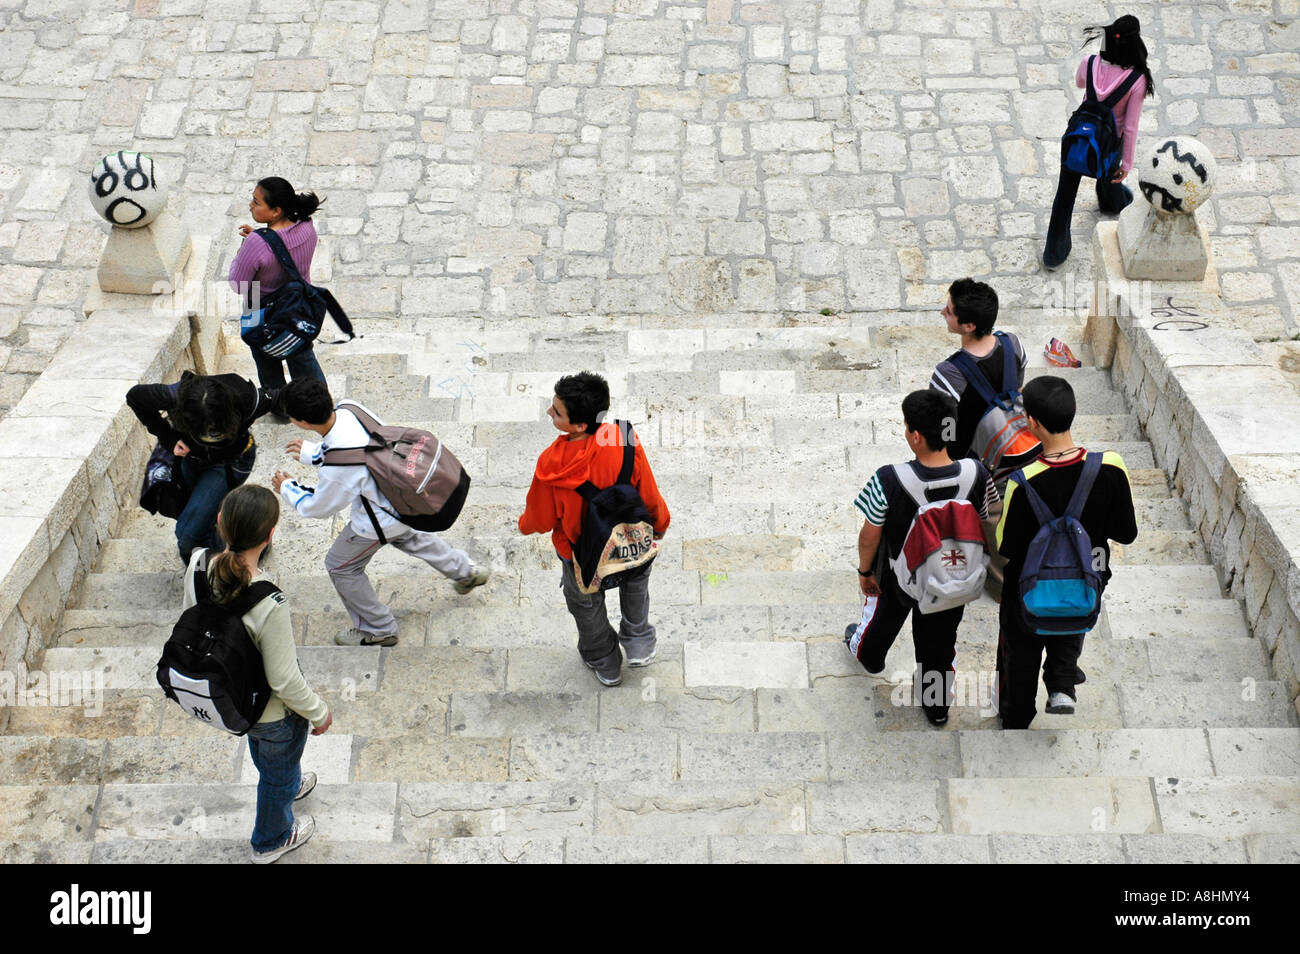 School kids with rucksack going down stairs, Graffiti, Alicante, Spain Stock Photo